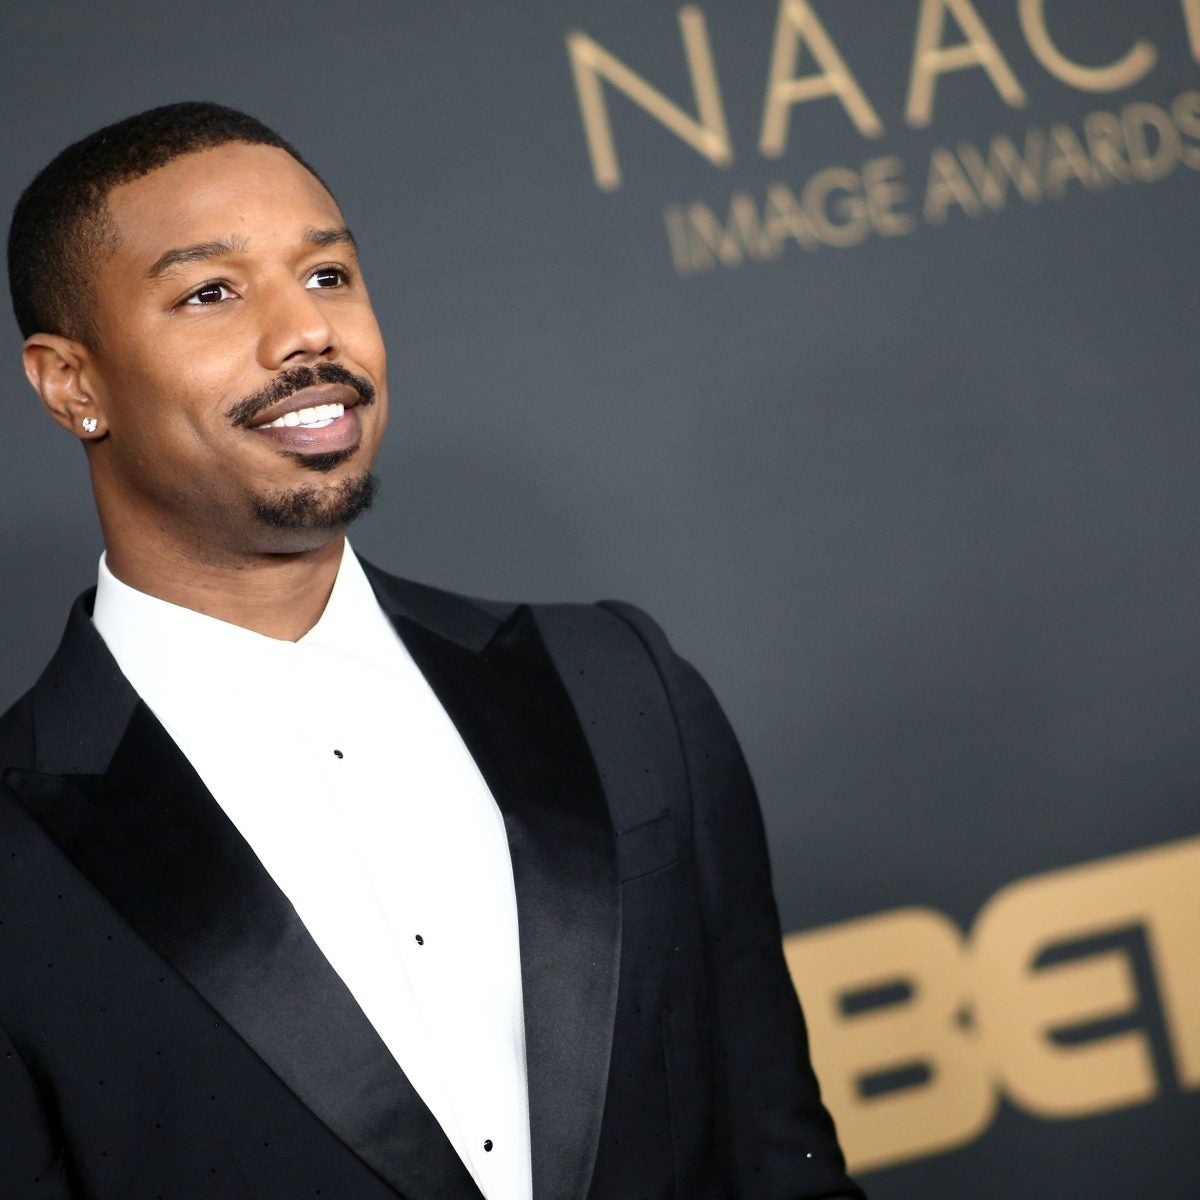 Hey Ladies! Here's What Michael B. Jordan Is Looking For In A Future Queen